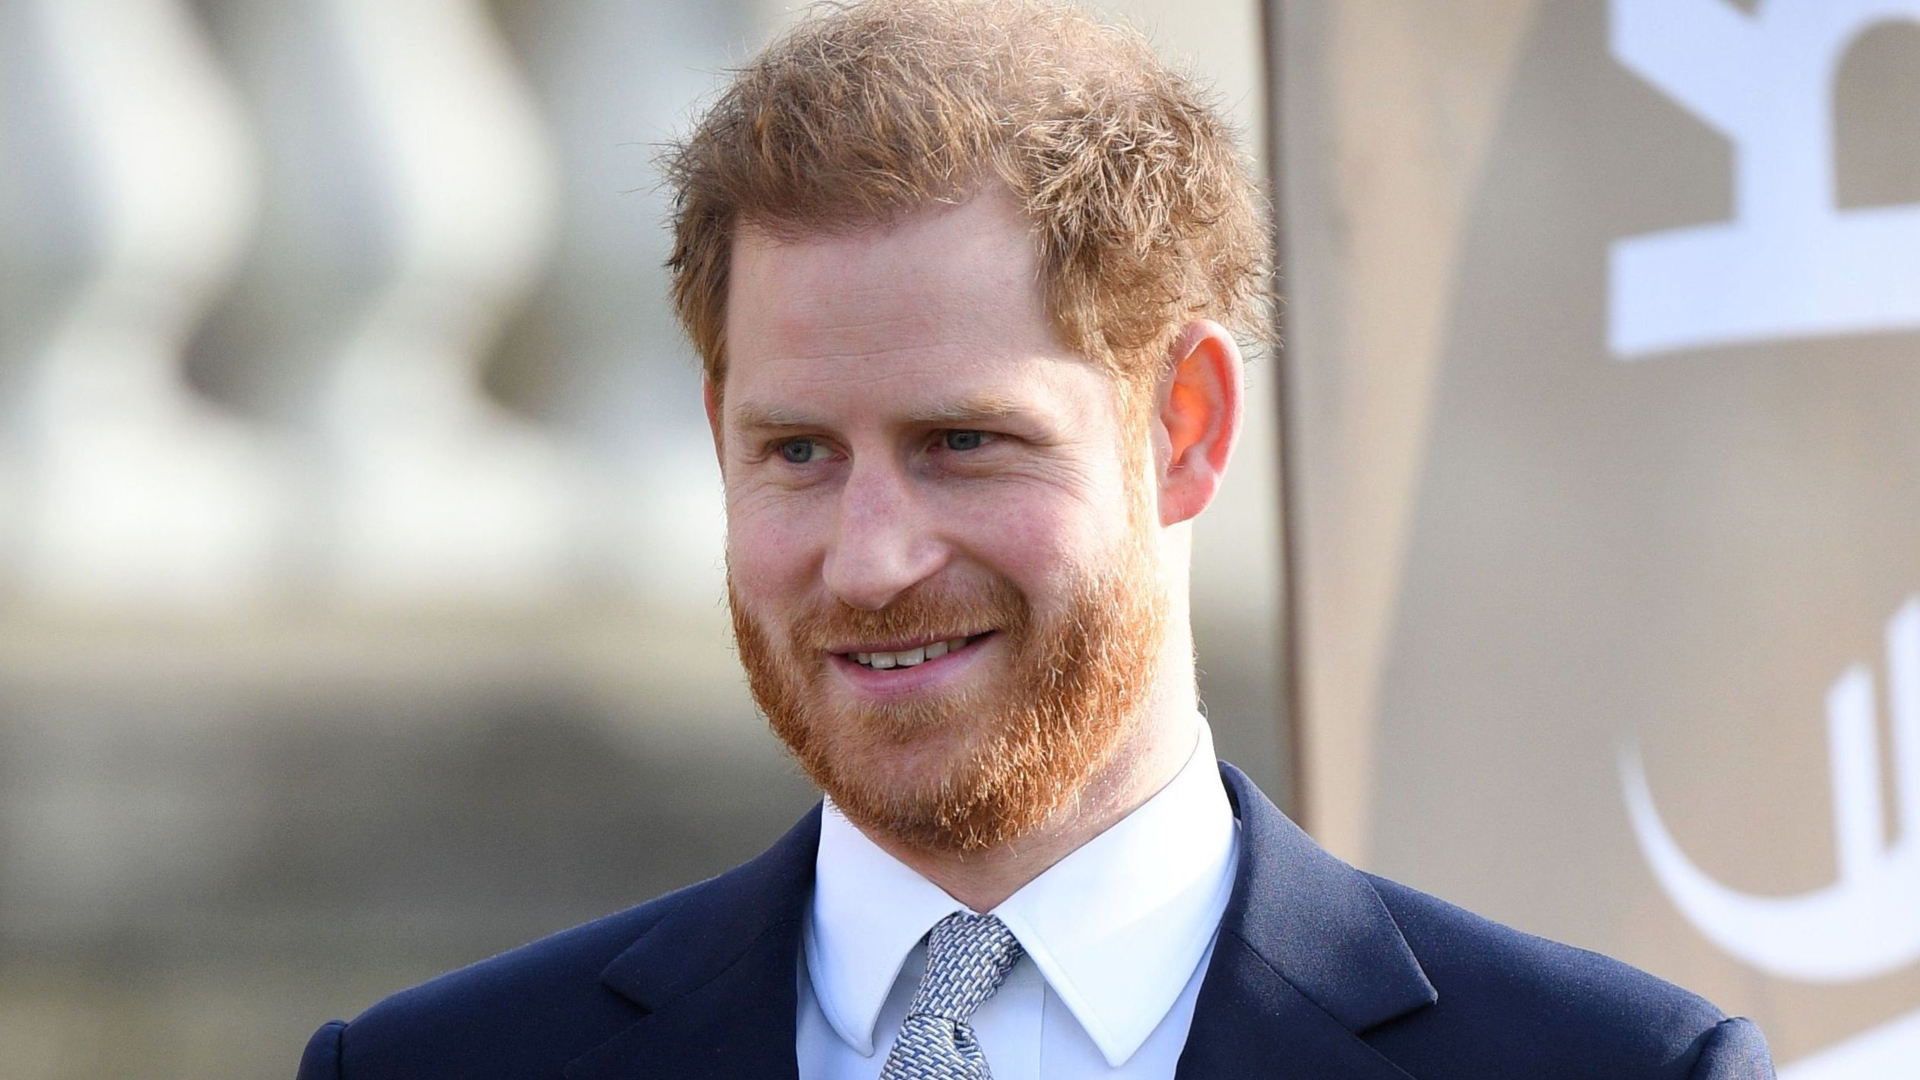 Does Anyone Know Prince Harry's Last Name?